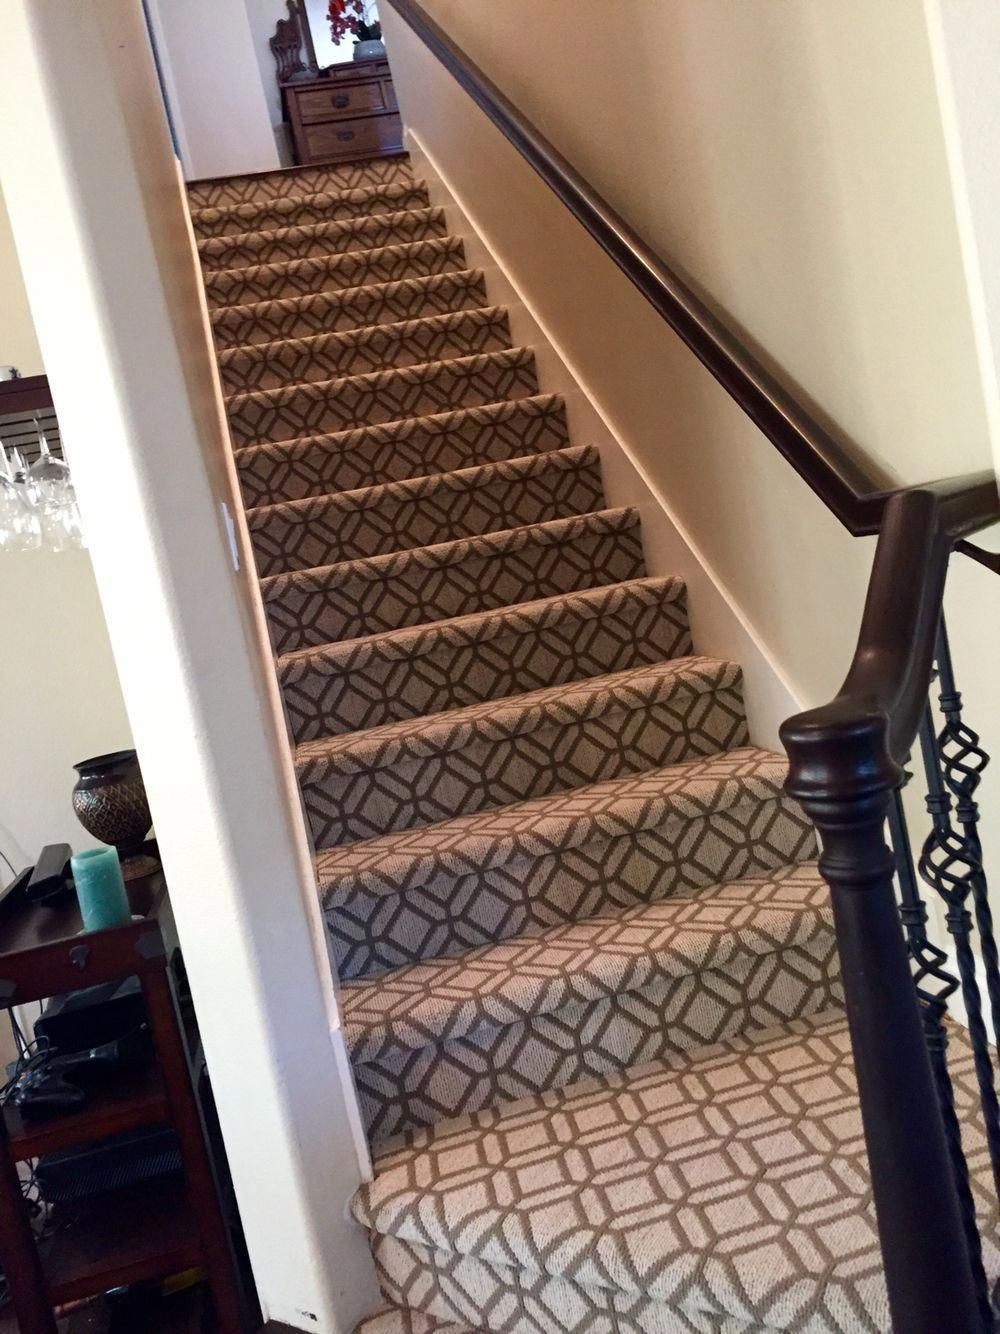 Where To Buy Plastic Carpet Runners Carpetrunnerscuttosize Info 7991105285 Carpet Stairs Carpet Staircase Patterned Stair Carpet